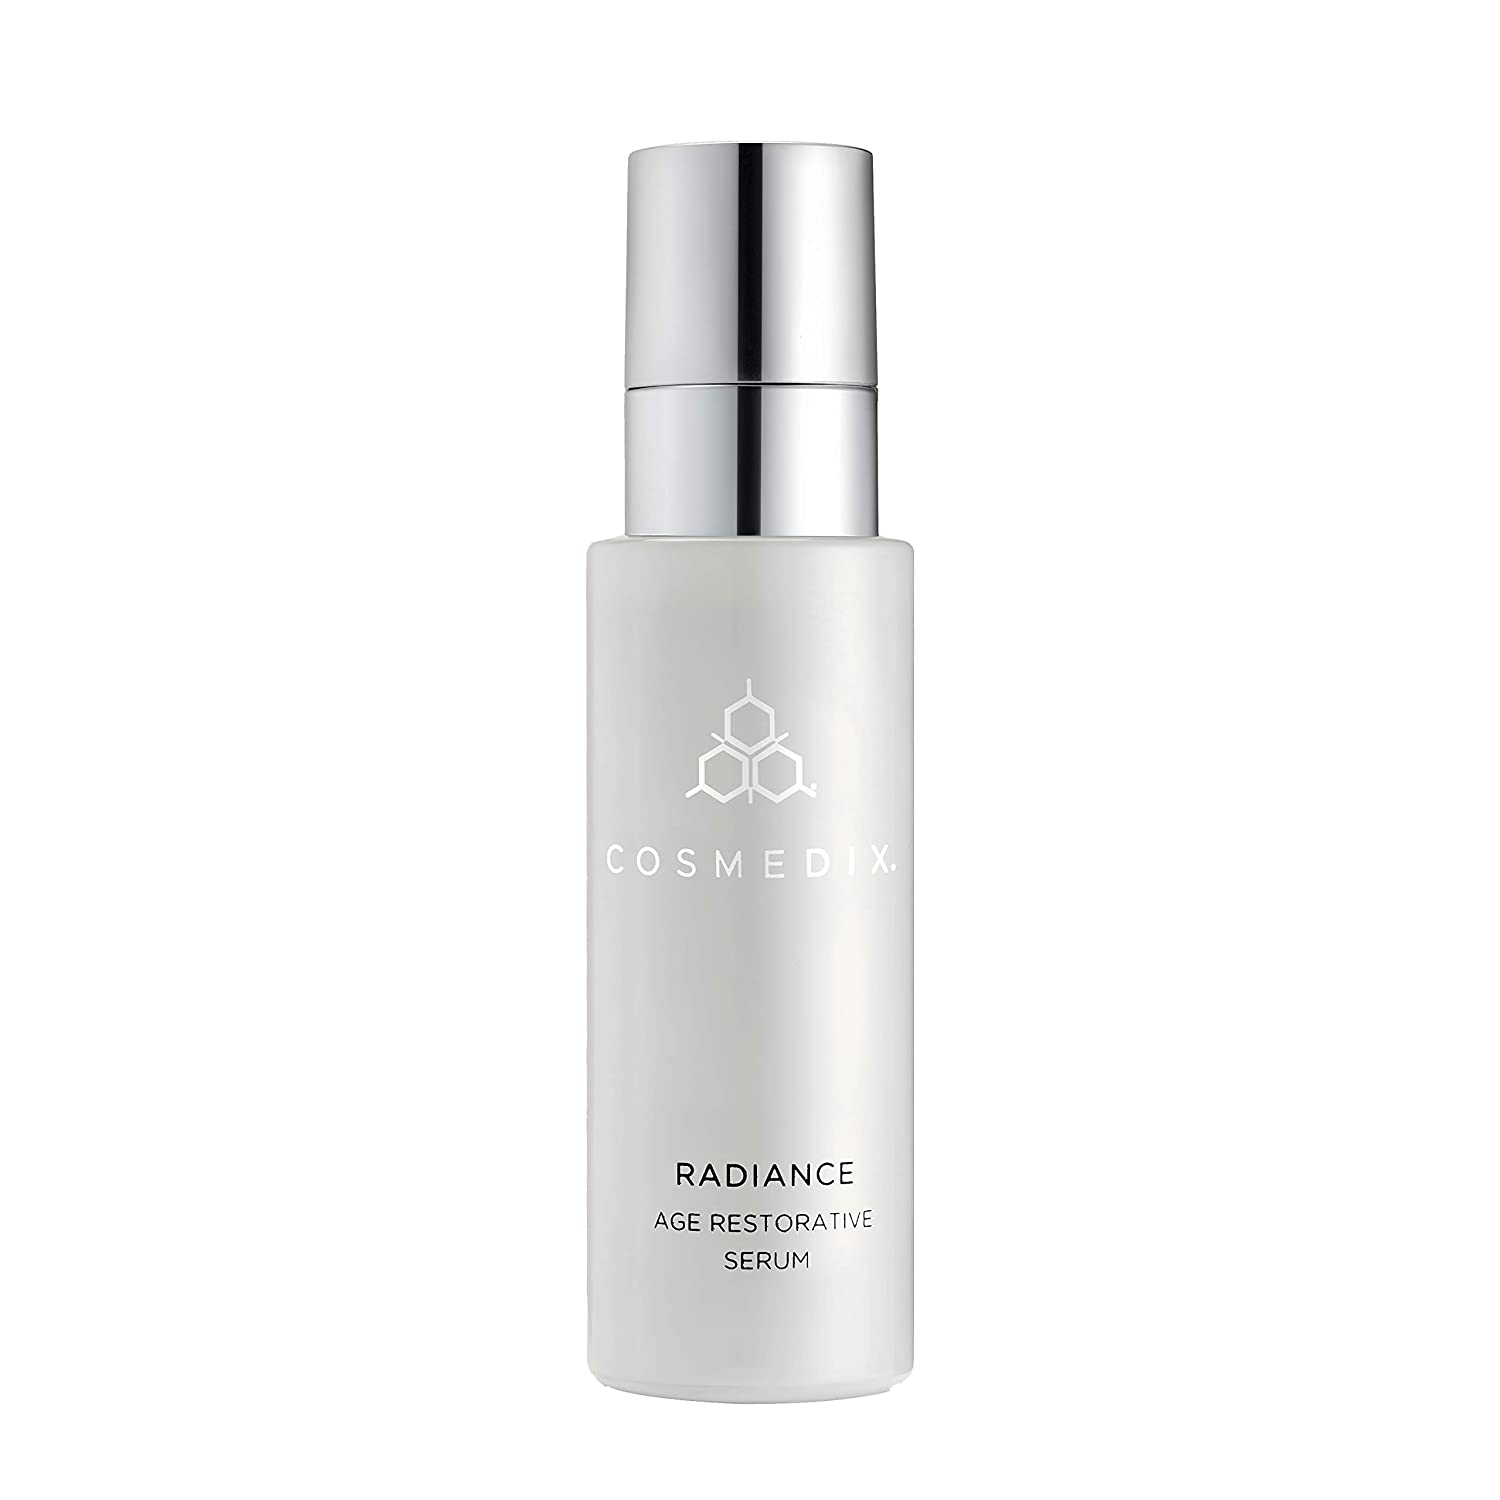 コスメディックス Radiance Age 30ml Restorative Restorative Serum Age 30ml B01E7Q48AK, ヒットイレブン:5286badd --- forums.joybit.com